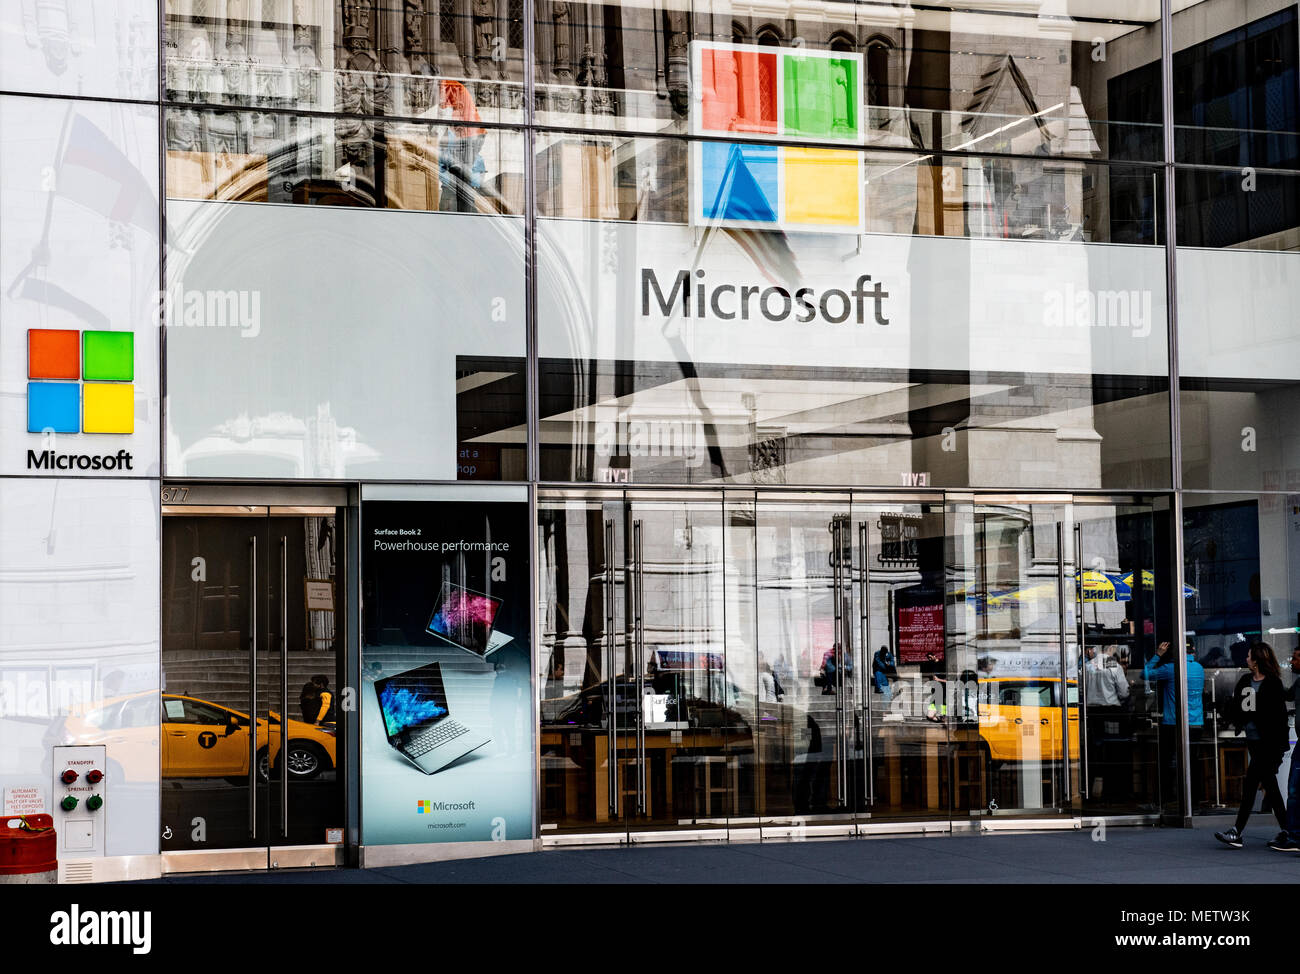 Microsoft store on Fifth Avenue in New York City. Stock Photo